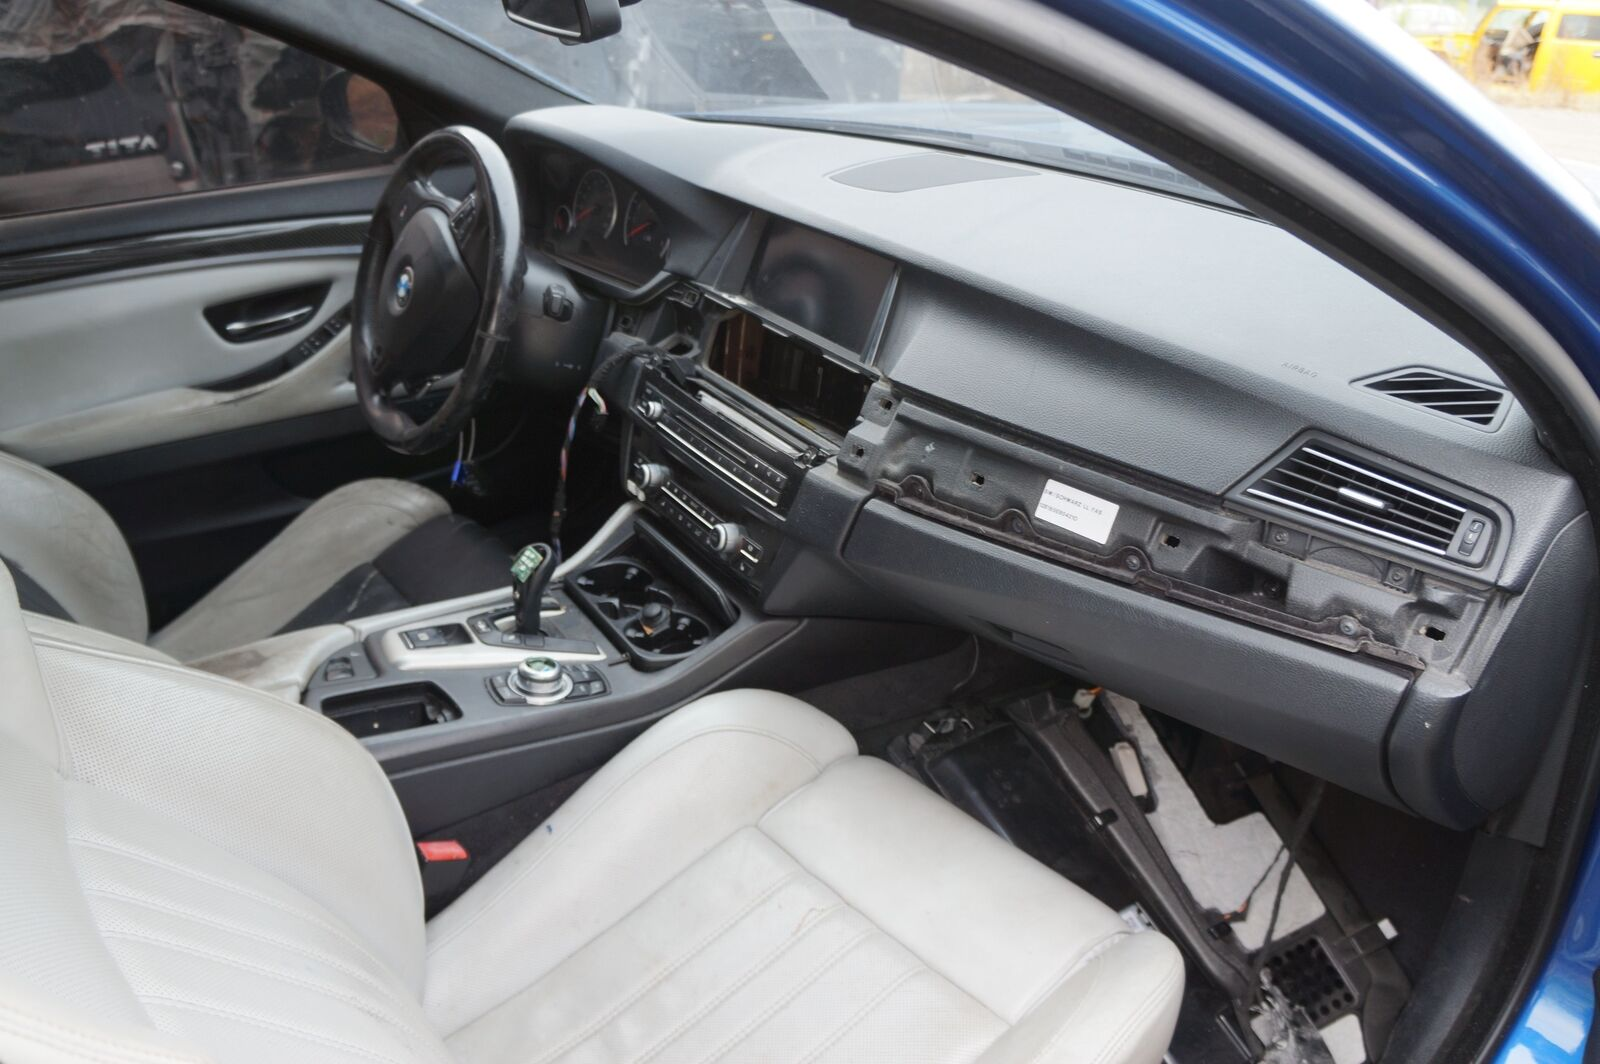 2013 Bmw M5 Fuse Box Tech Tips Wiring Diagrams 535i Images Gallery